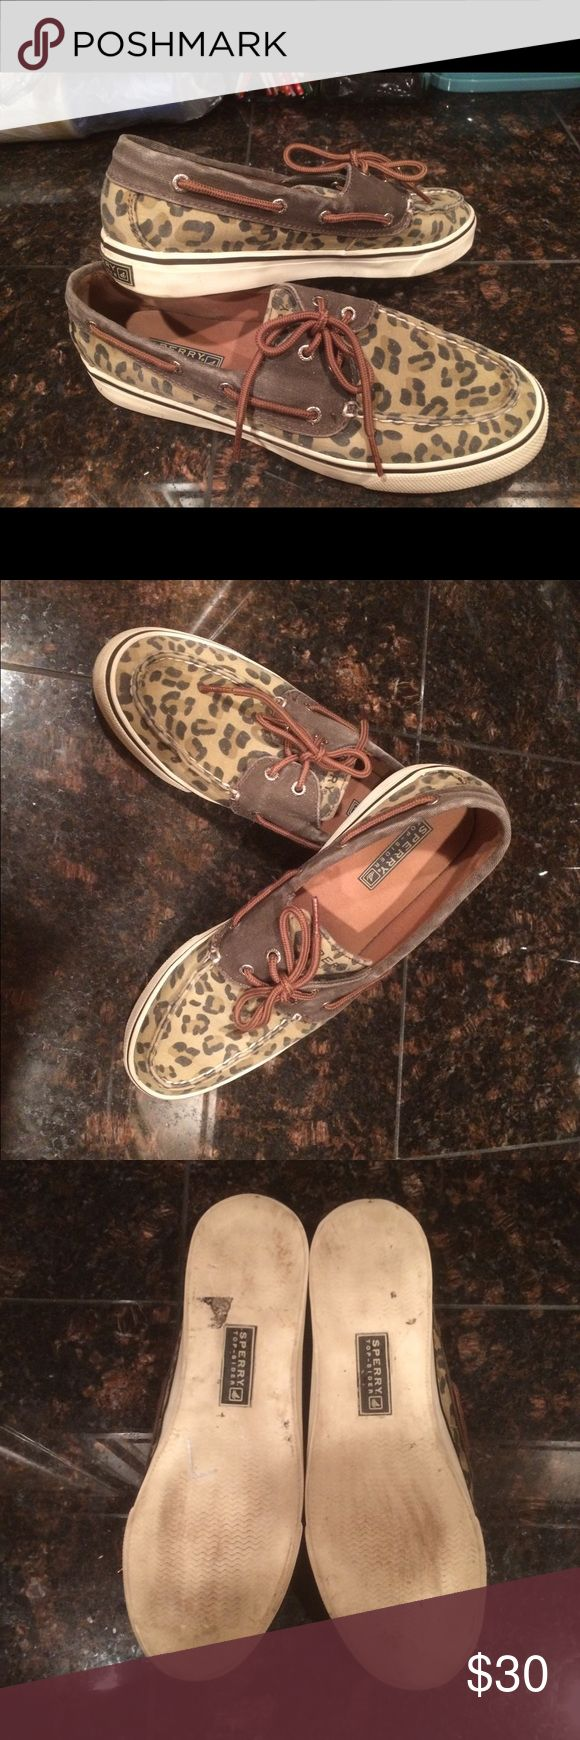 Sperry Top-Siders  Adorable animal print! Perfect for that weekend at the beach!  Sperry Top-Sider Shoes